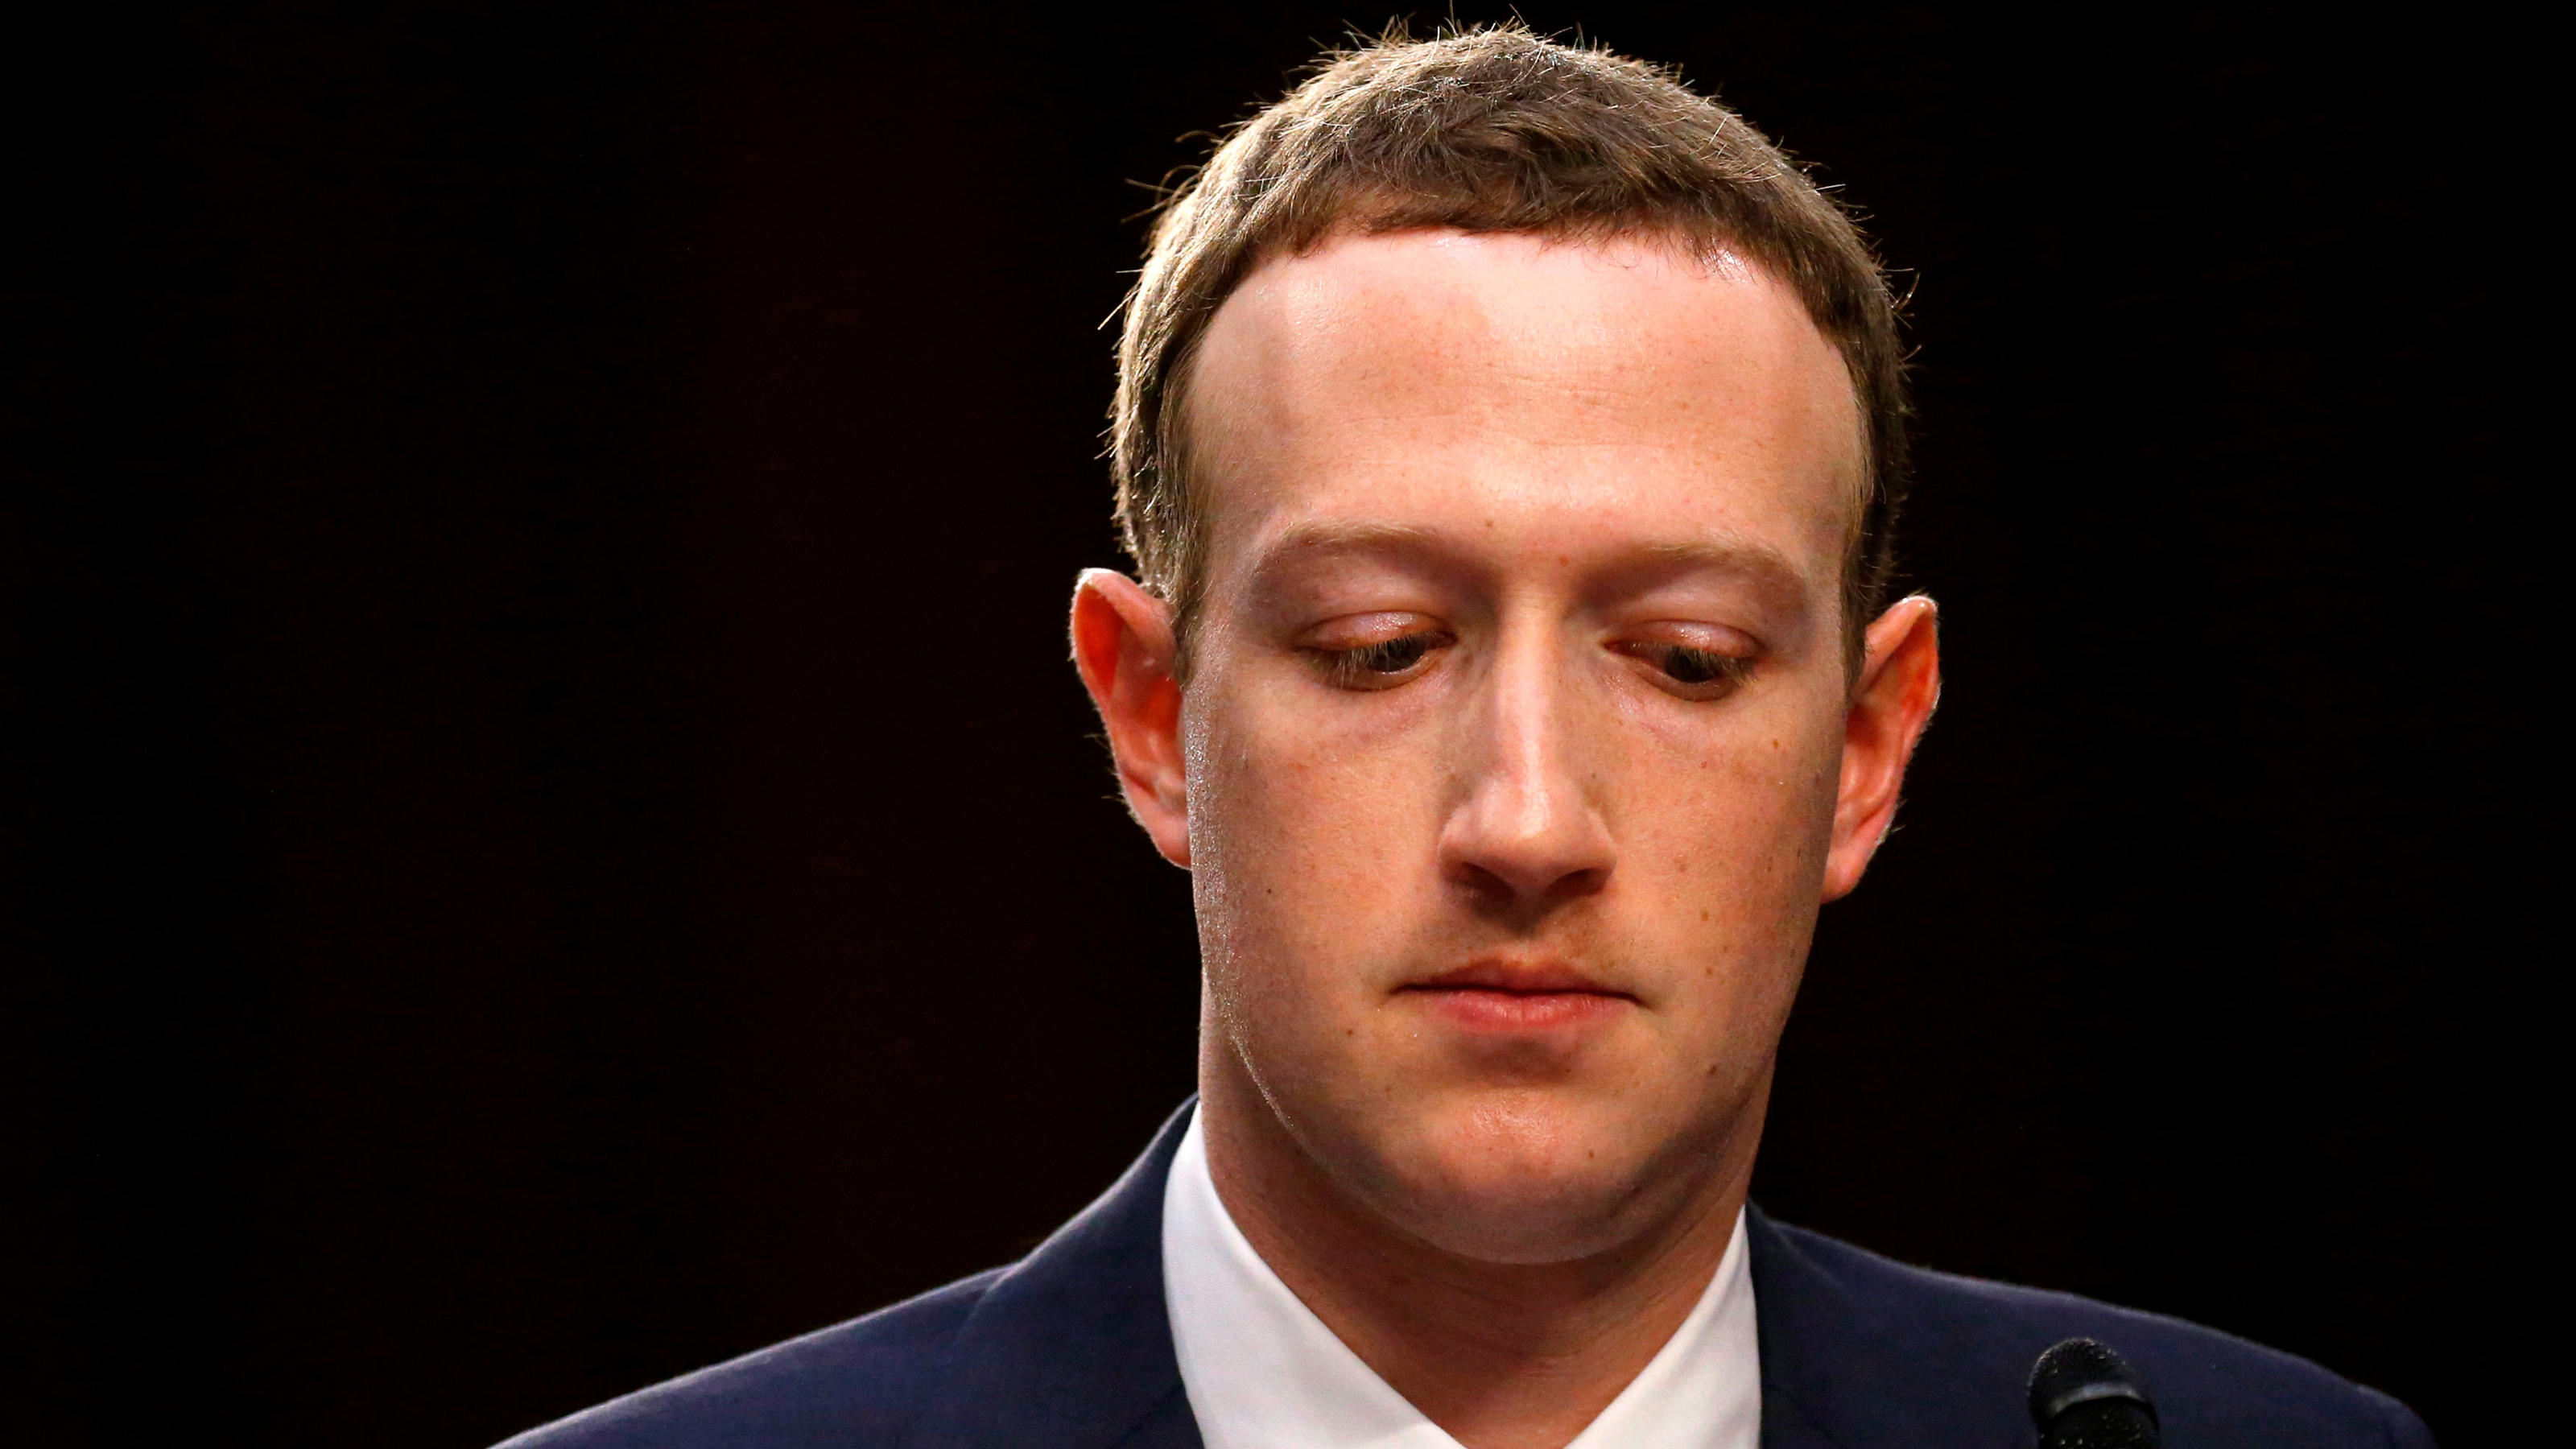 FILE PHOTO: Facebook CEO Mark Zuckerberg listens while testifying before a joint Senate Judiciary and Commerce Committees hearing regarding the company's use and protection of user data, on Capitol Hill in Washington, U.S., April 10, 2018. Picture